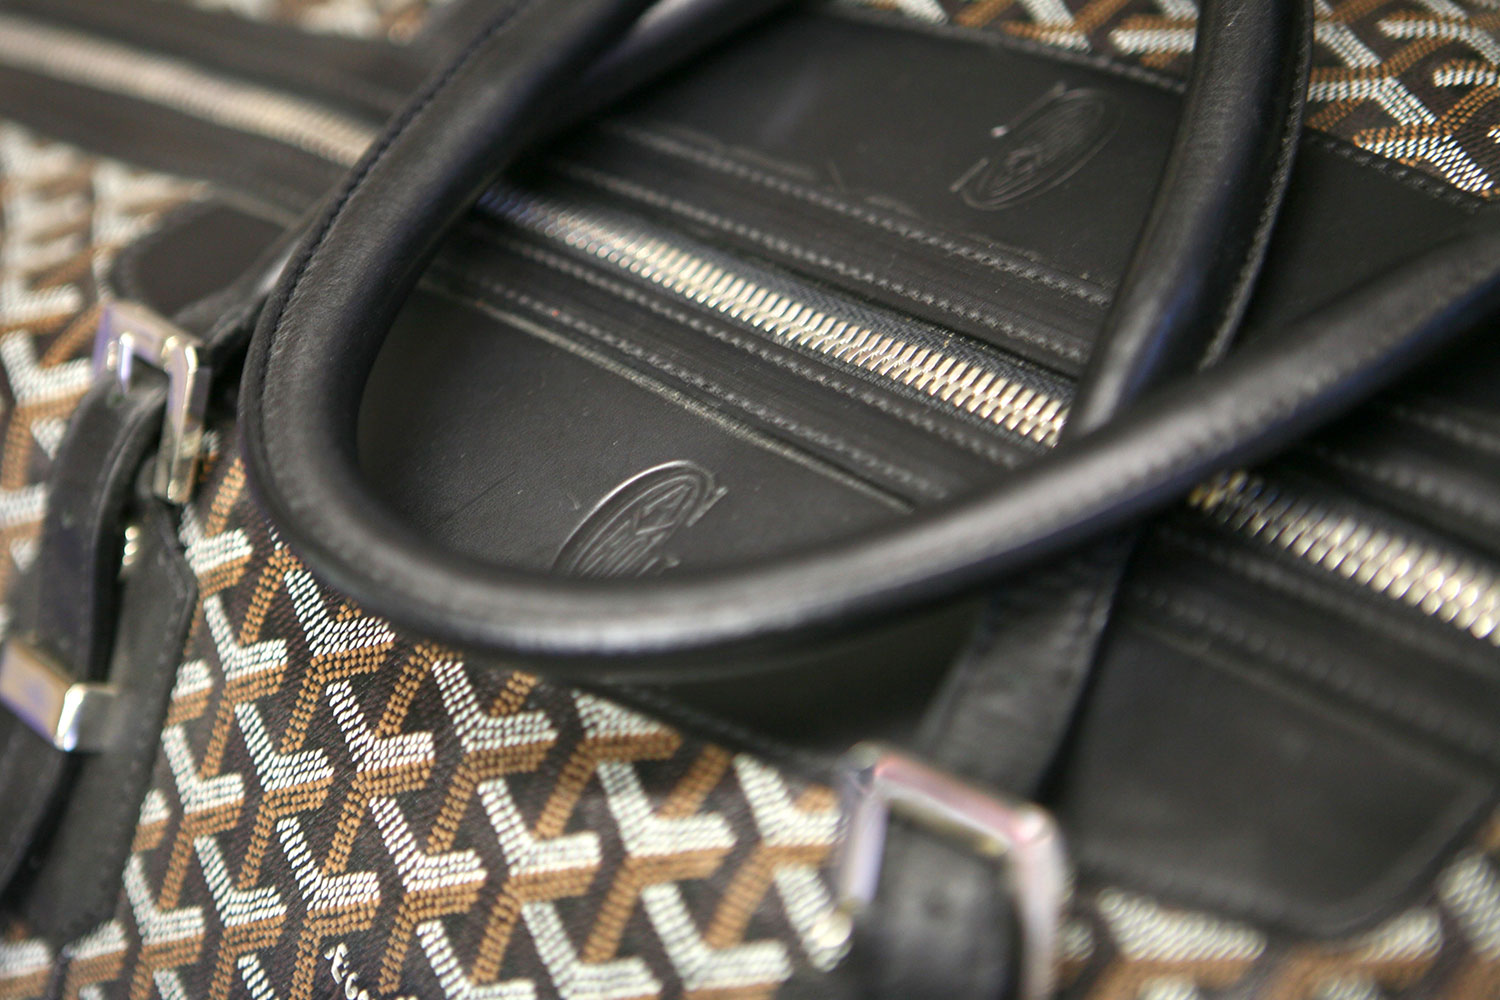 d7be64079ad4 Why Goyard Remains Fashion s Most Mysterious Luxury Brand - Vox